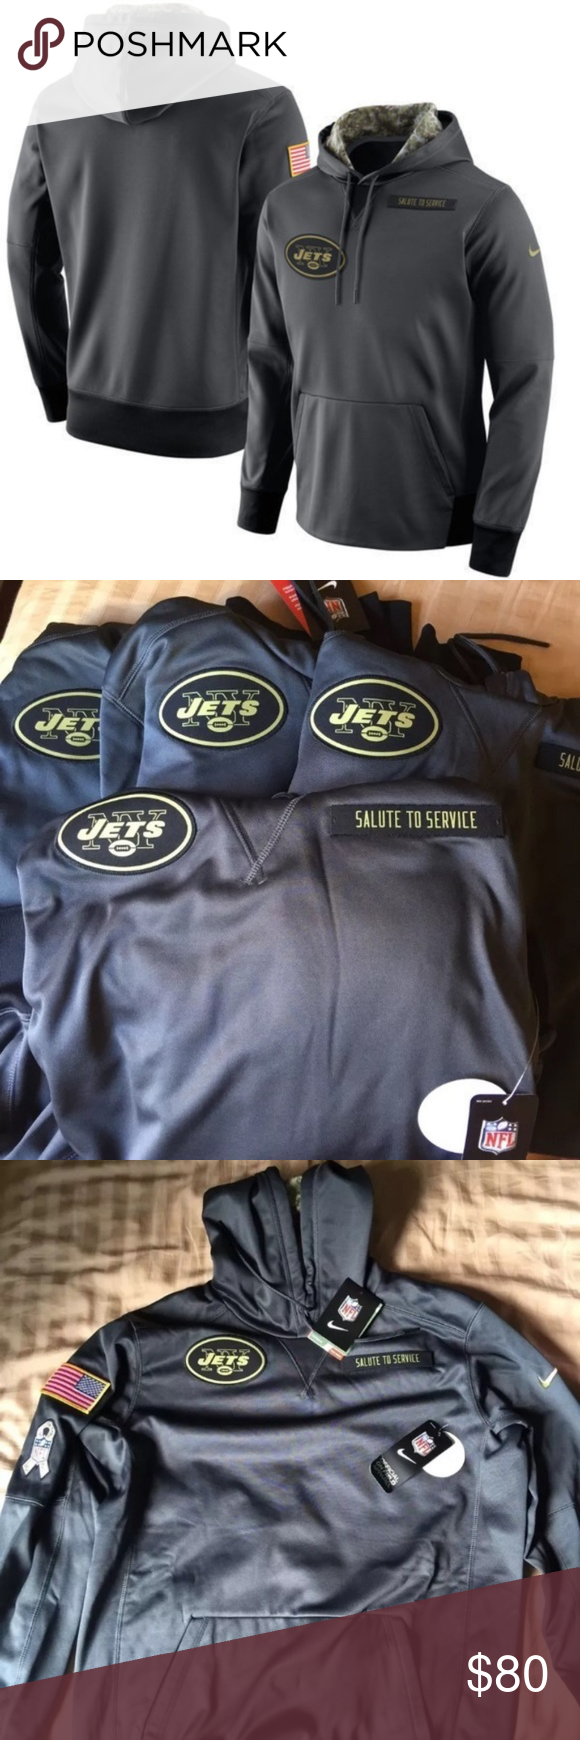 reputable site 2d0c0 5f3d1 Nike New York Jets Salute To Service Hoodie Price Firm. 100 ...